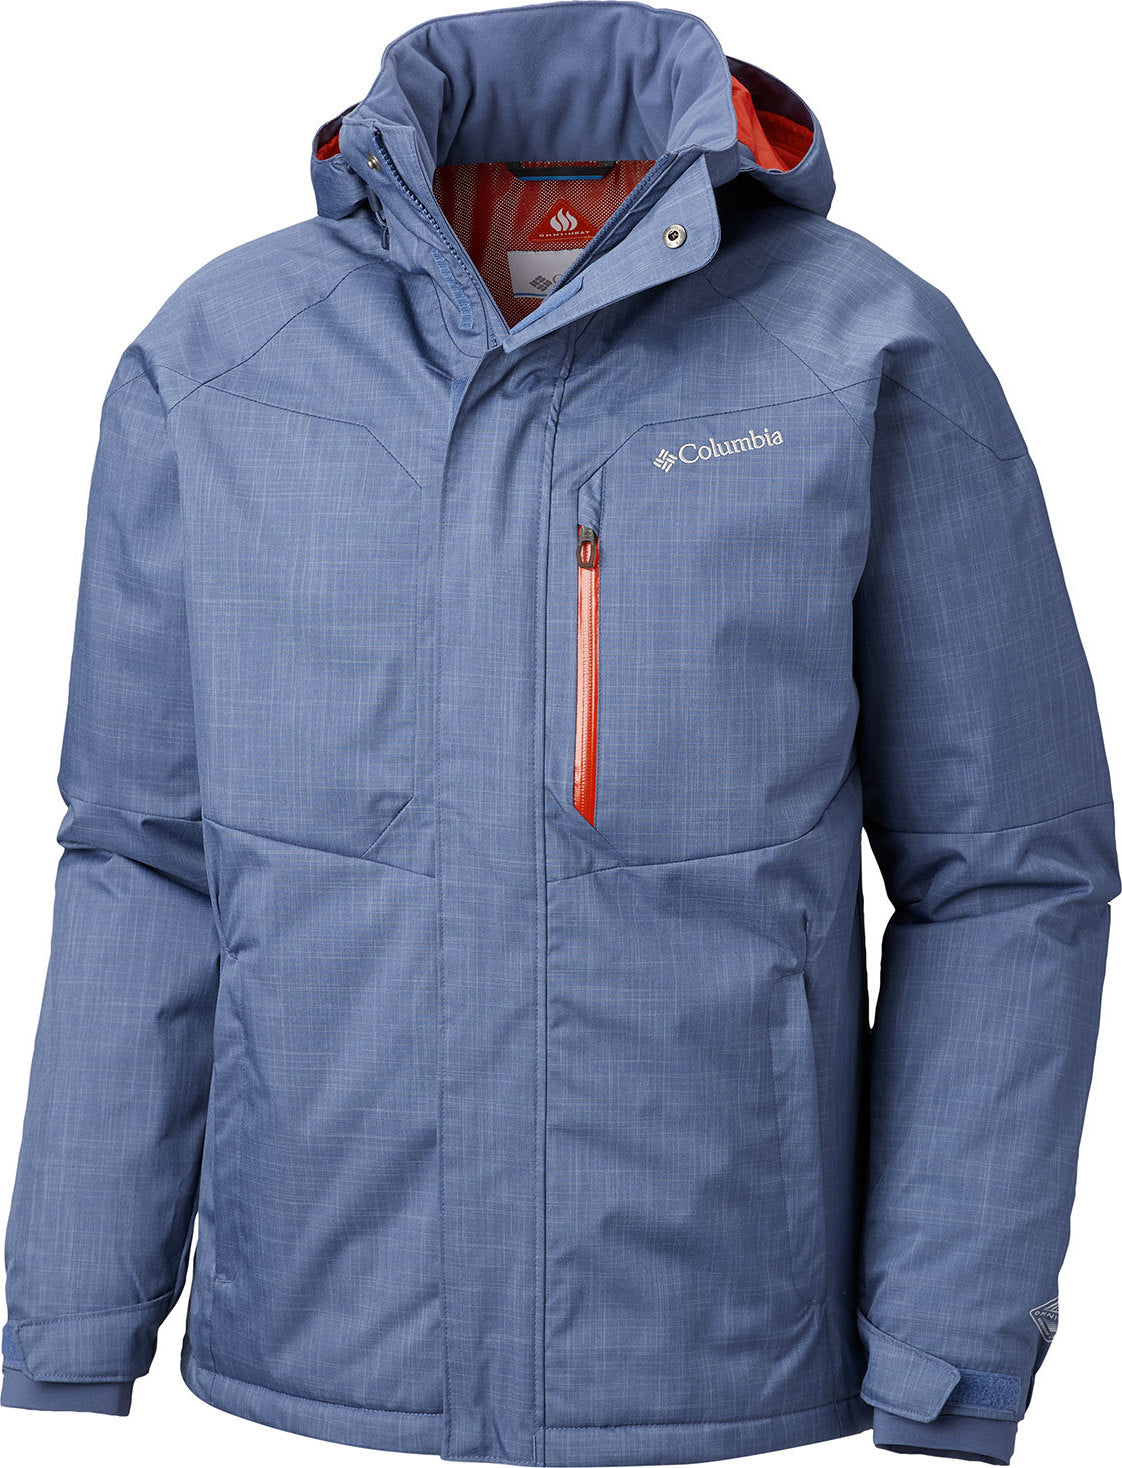 a700b3cac5a Columbia Men s Alpine Action Jacket